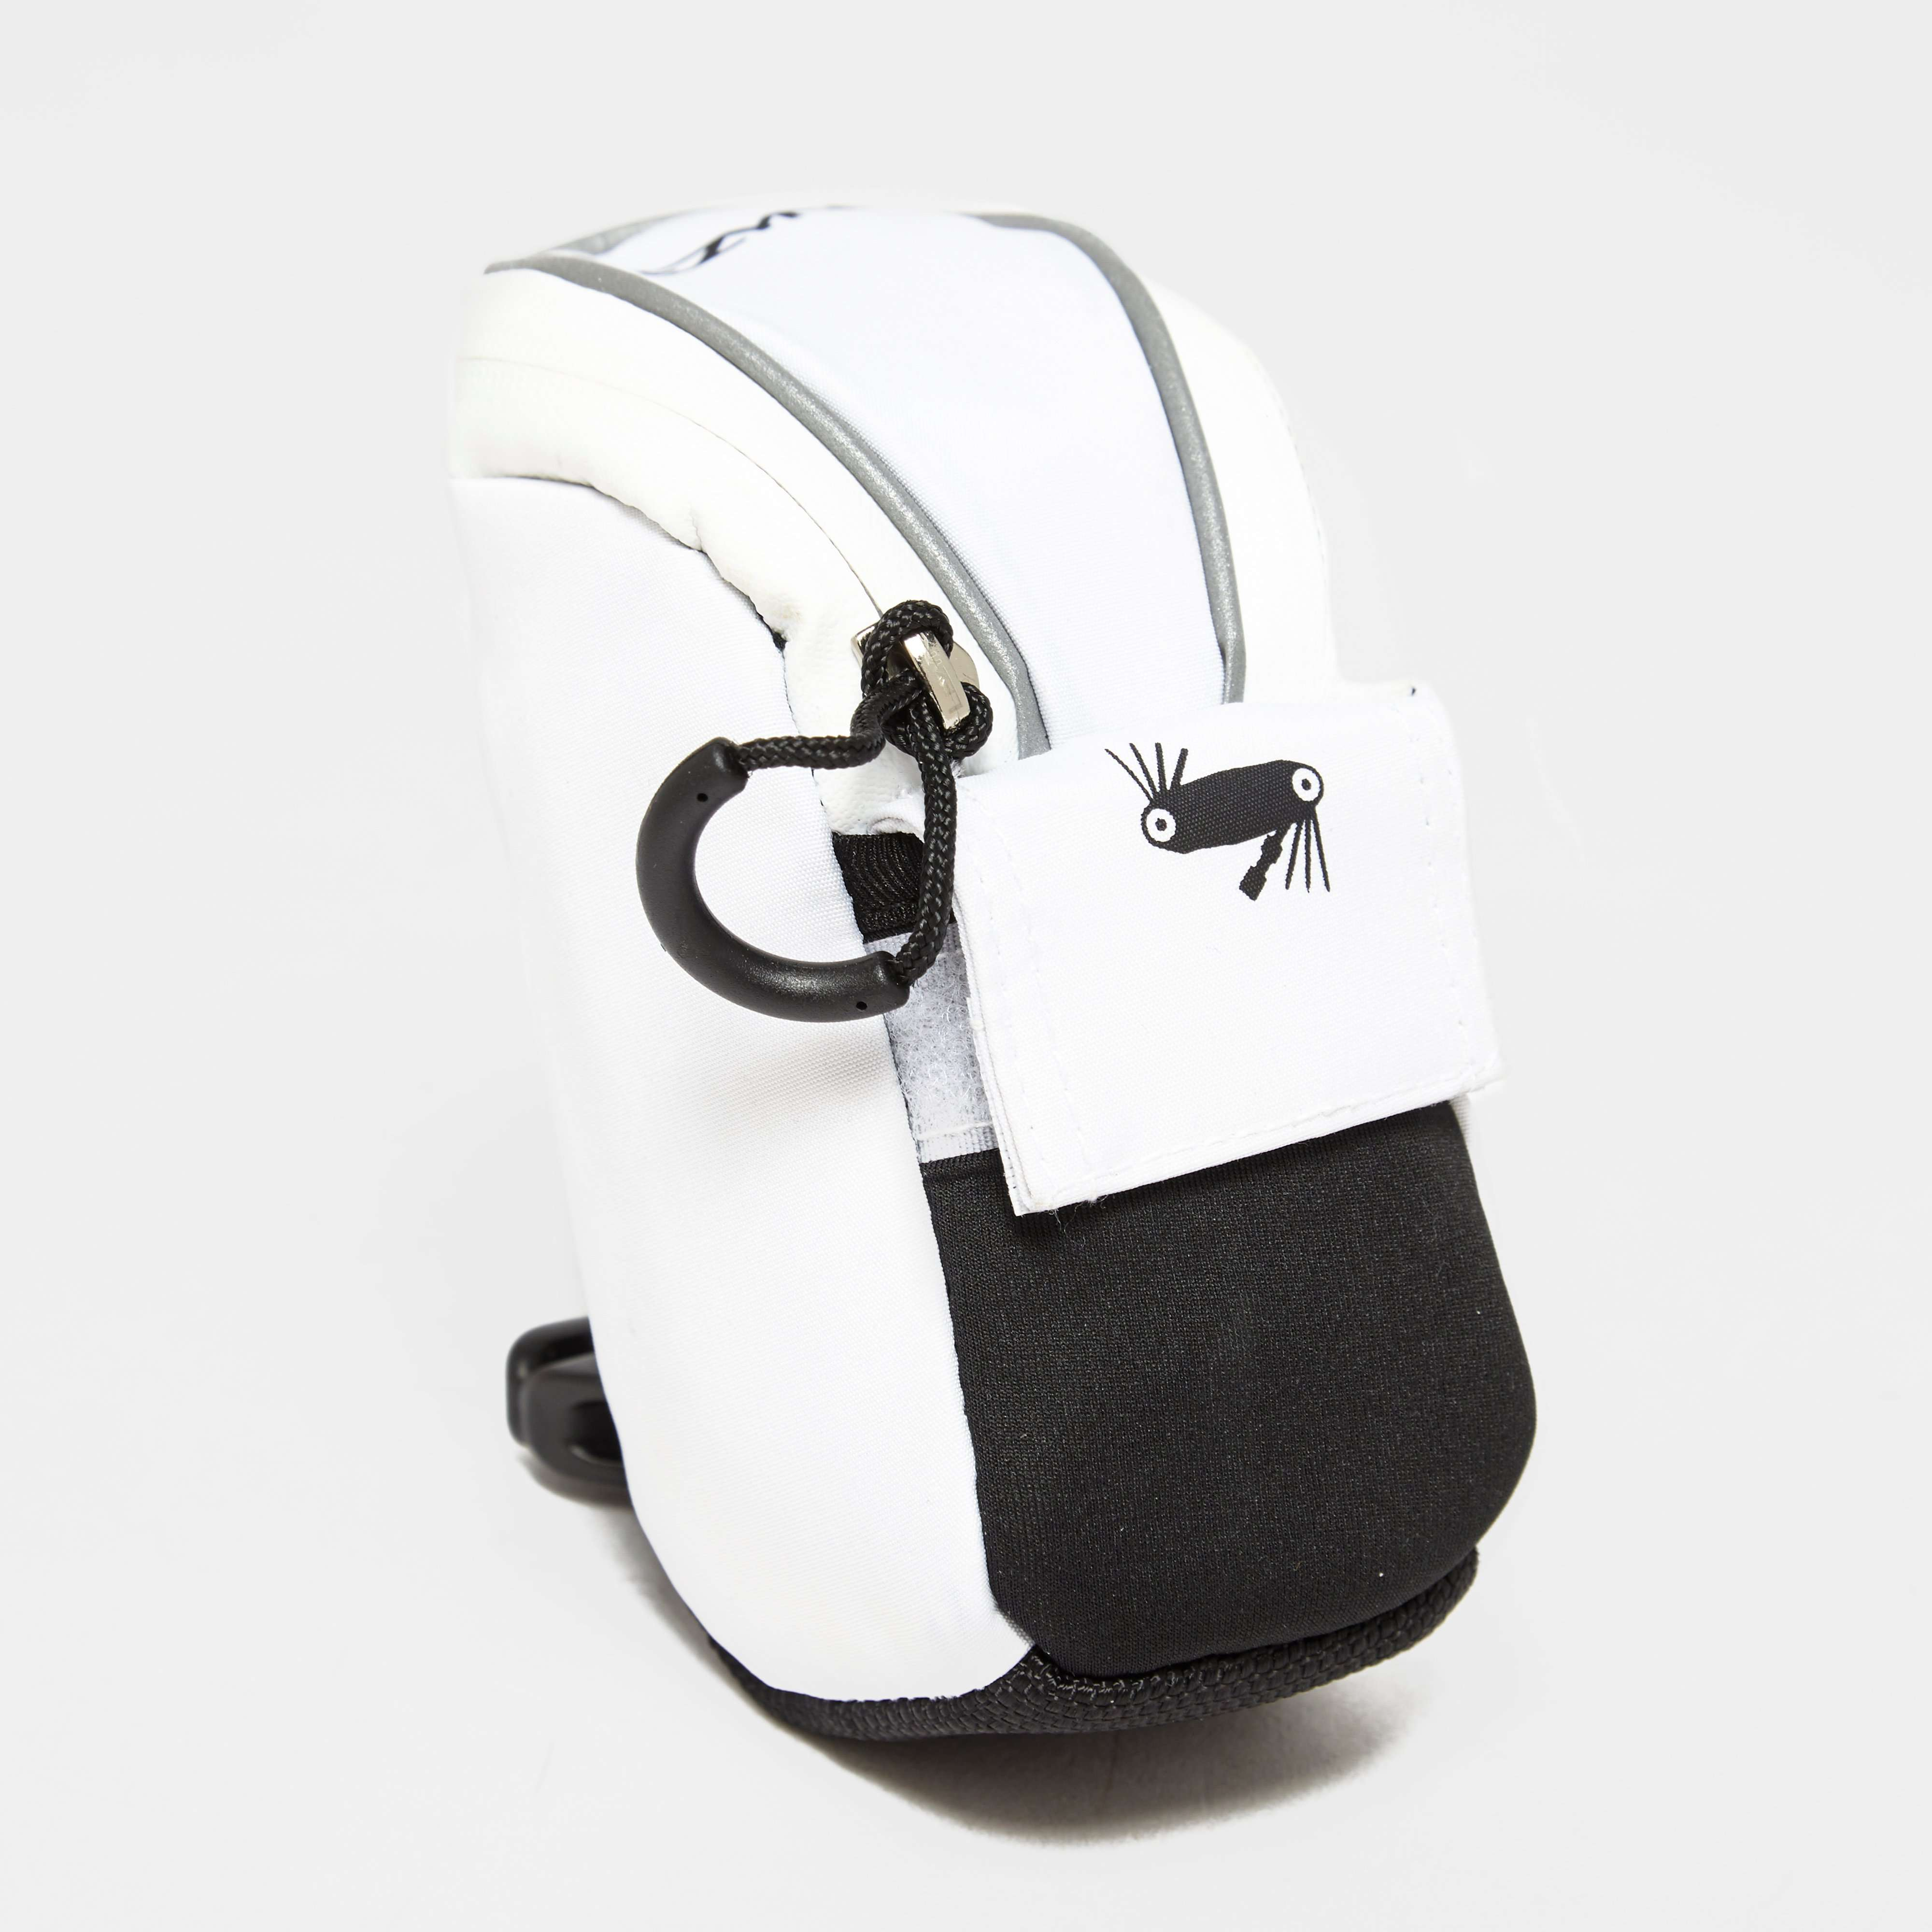 LEZYNE Micro Caddy QR Saddle Bag - Medium